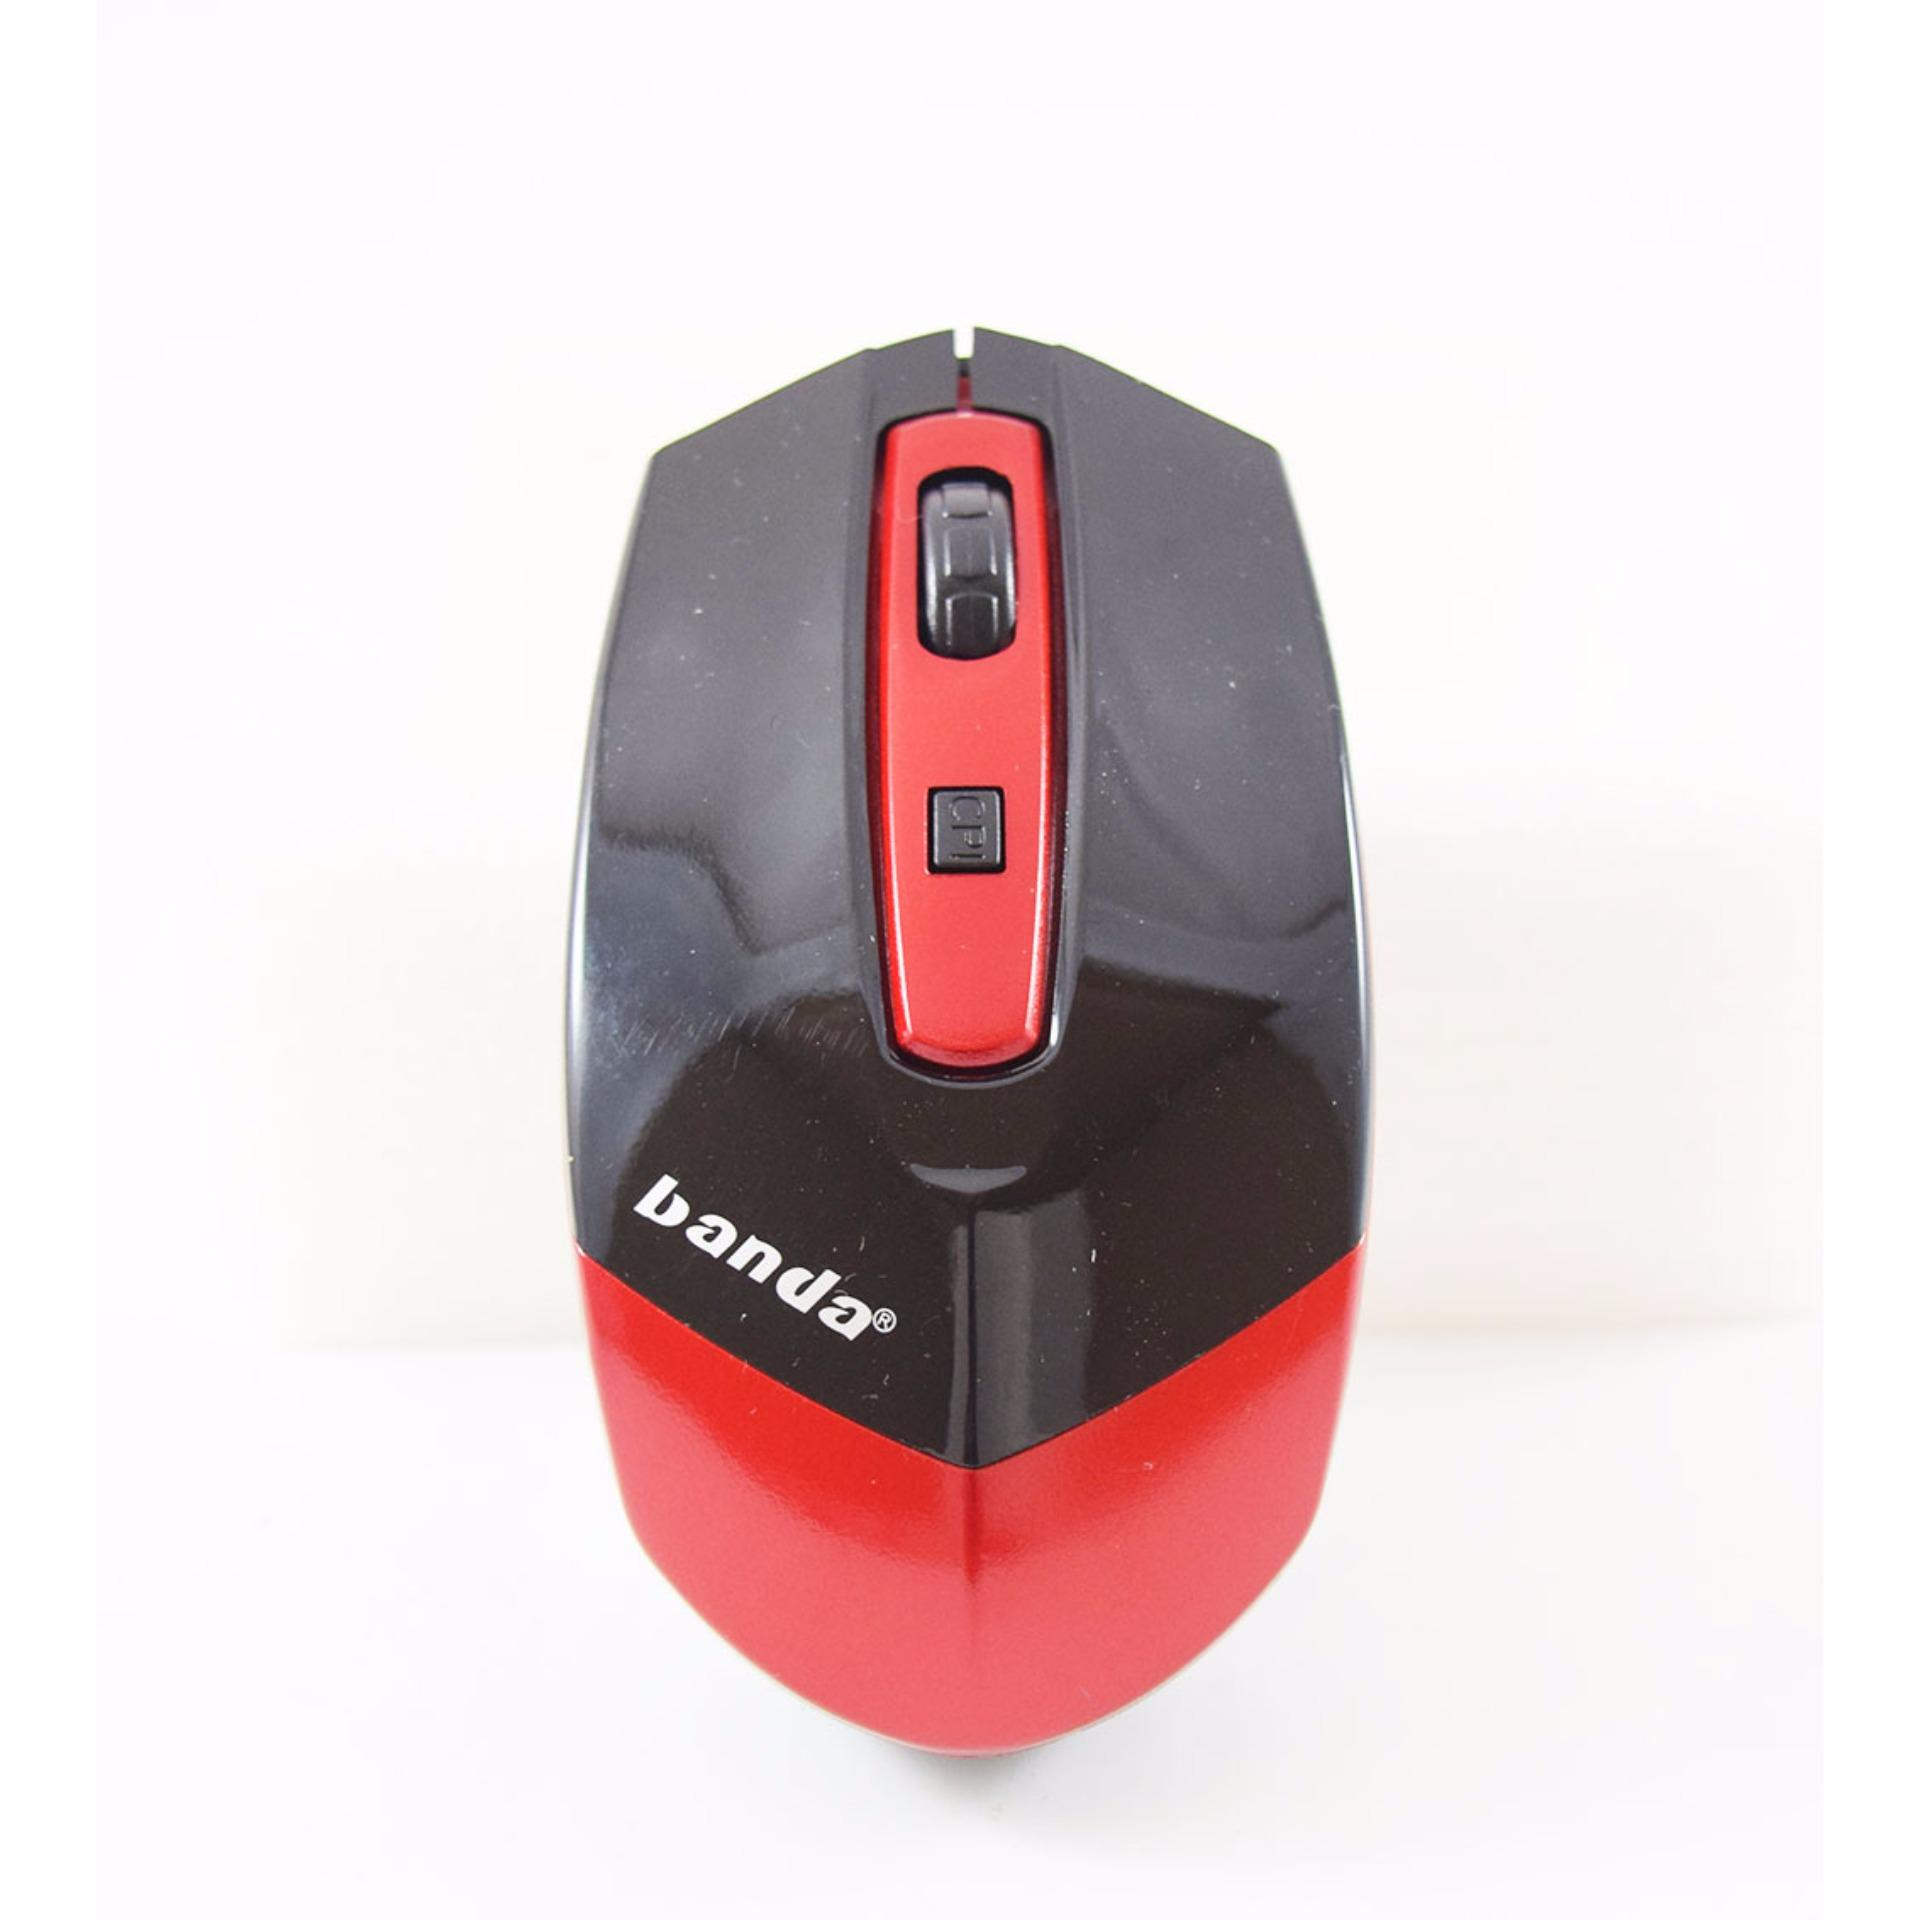 Mouse wireless bluetooth Banda 340 .